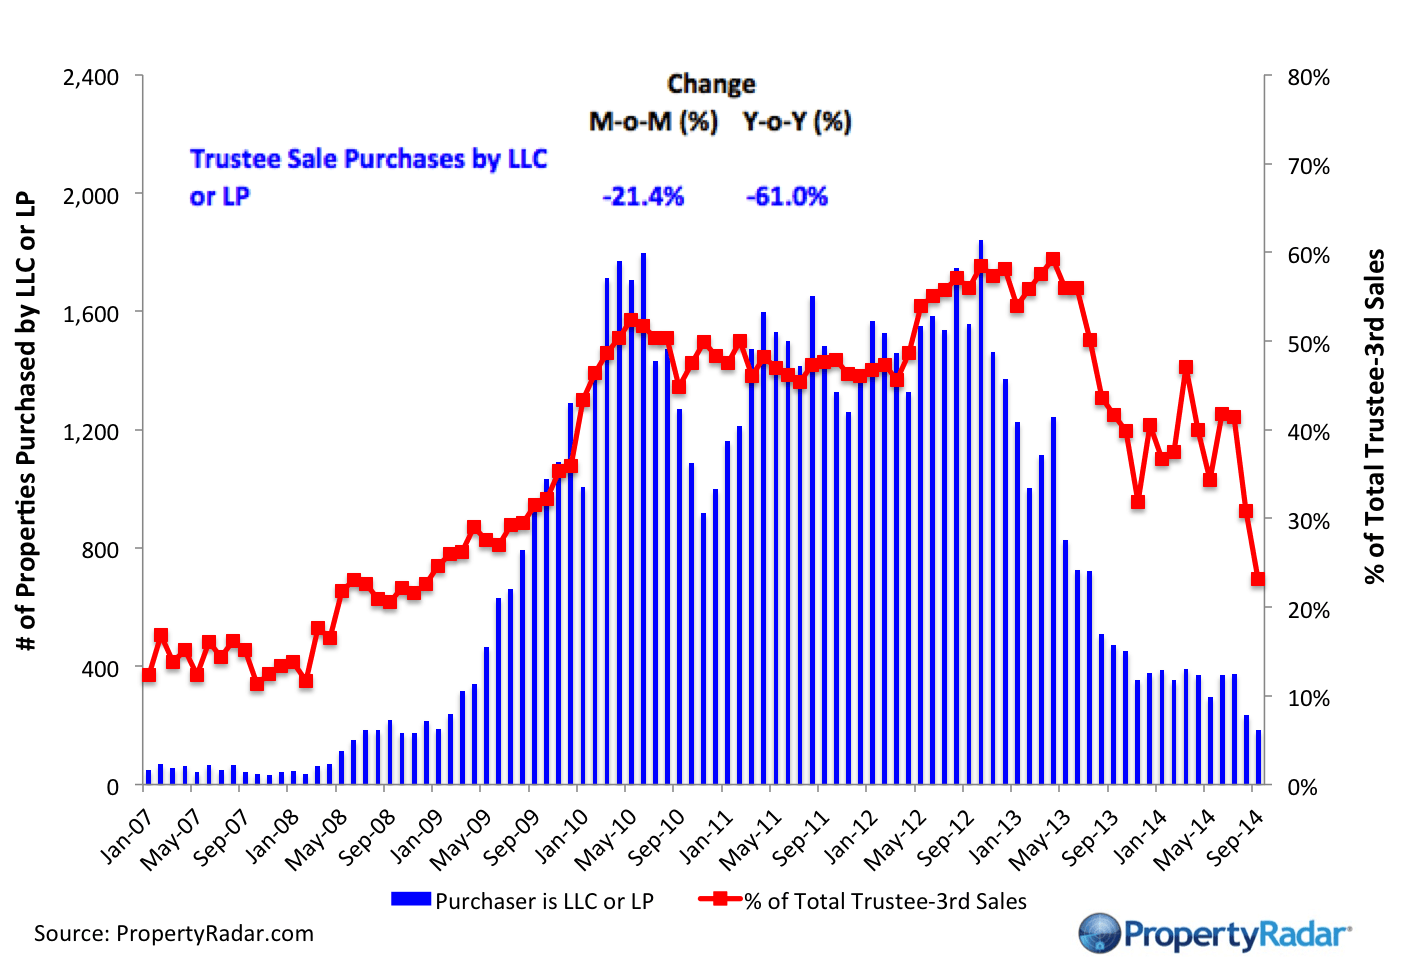 California Real Estate Market Stuck in Low Gear, September Sales Limited by High Prices and Relatively Tough Lending Standards